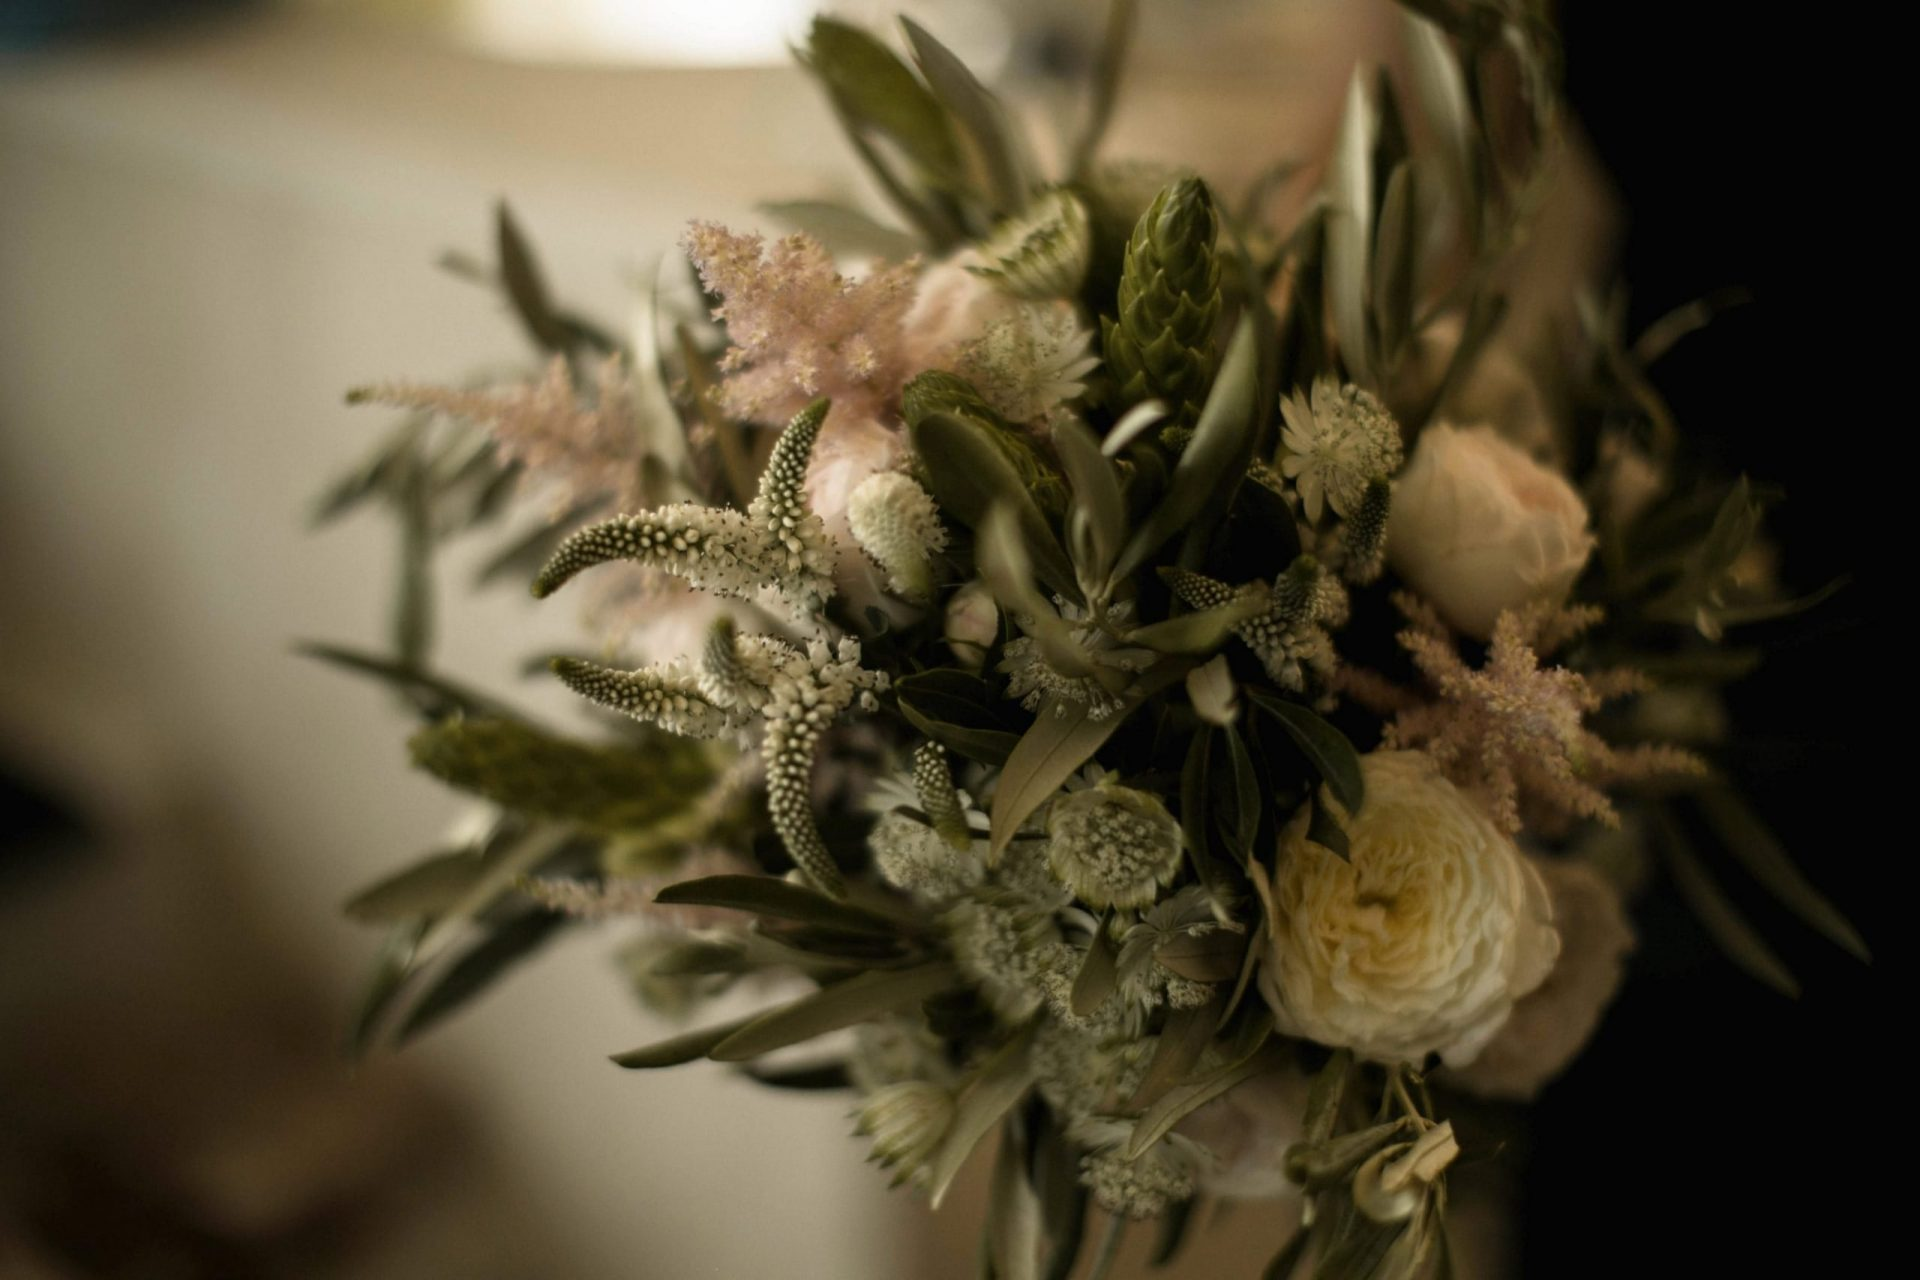 Melanie & Perit, bucolic and sophisticated flower bouquet